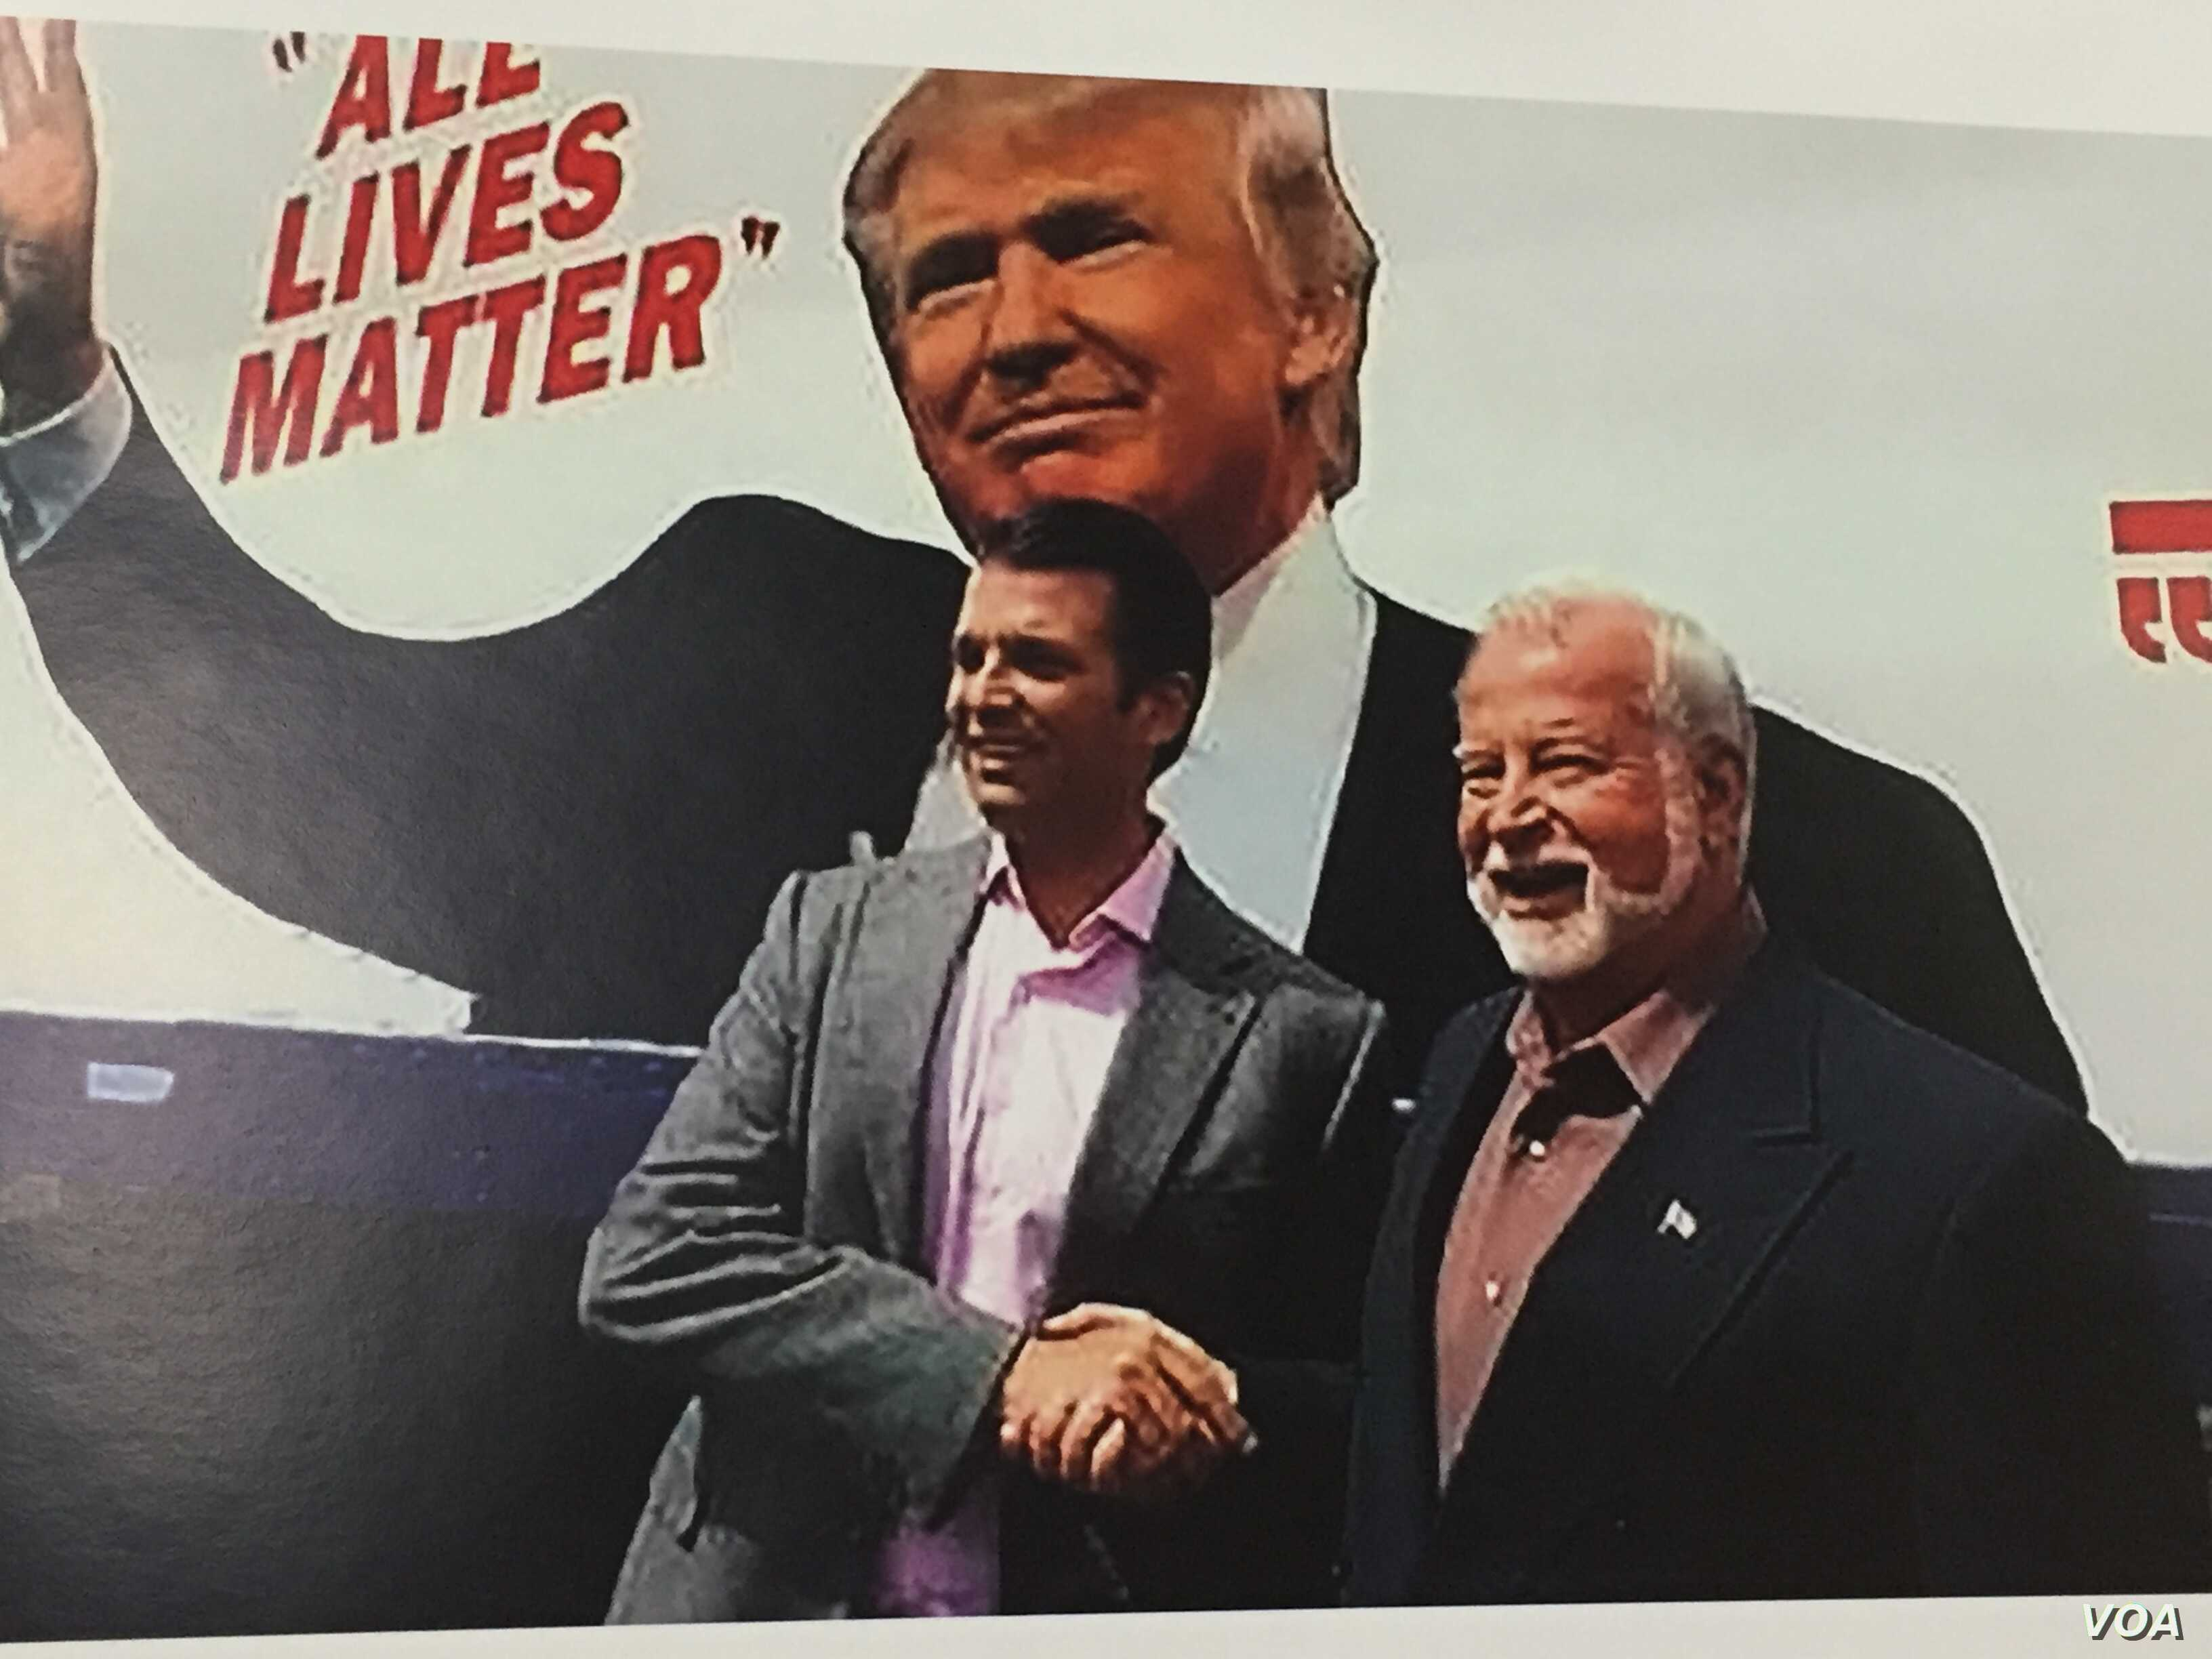 Businessman and Trump supporter Bob Bolus of Scranton, Pennsylvania, shakes hands with Donald Trump Jr. during campaign stop. (A. Pande/VOA)